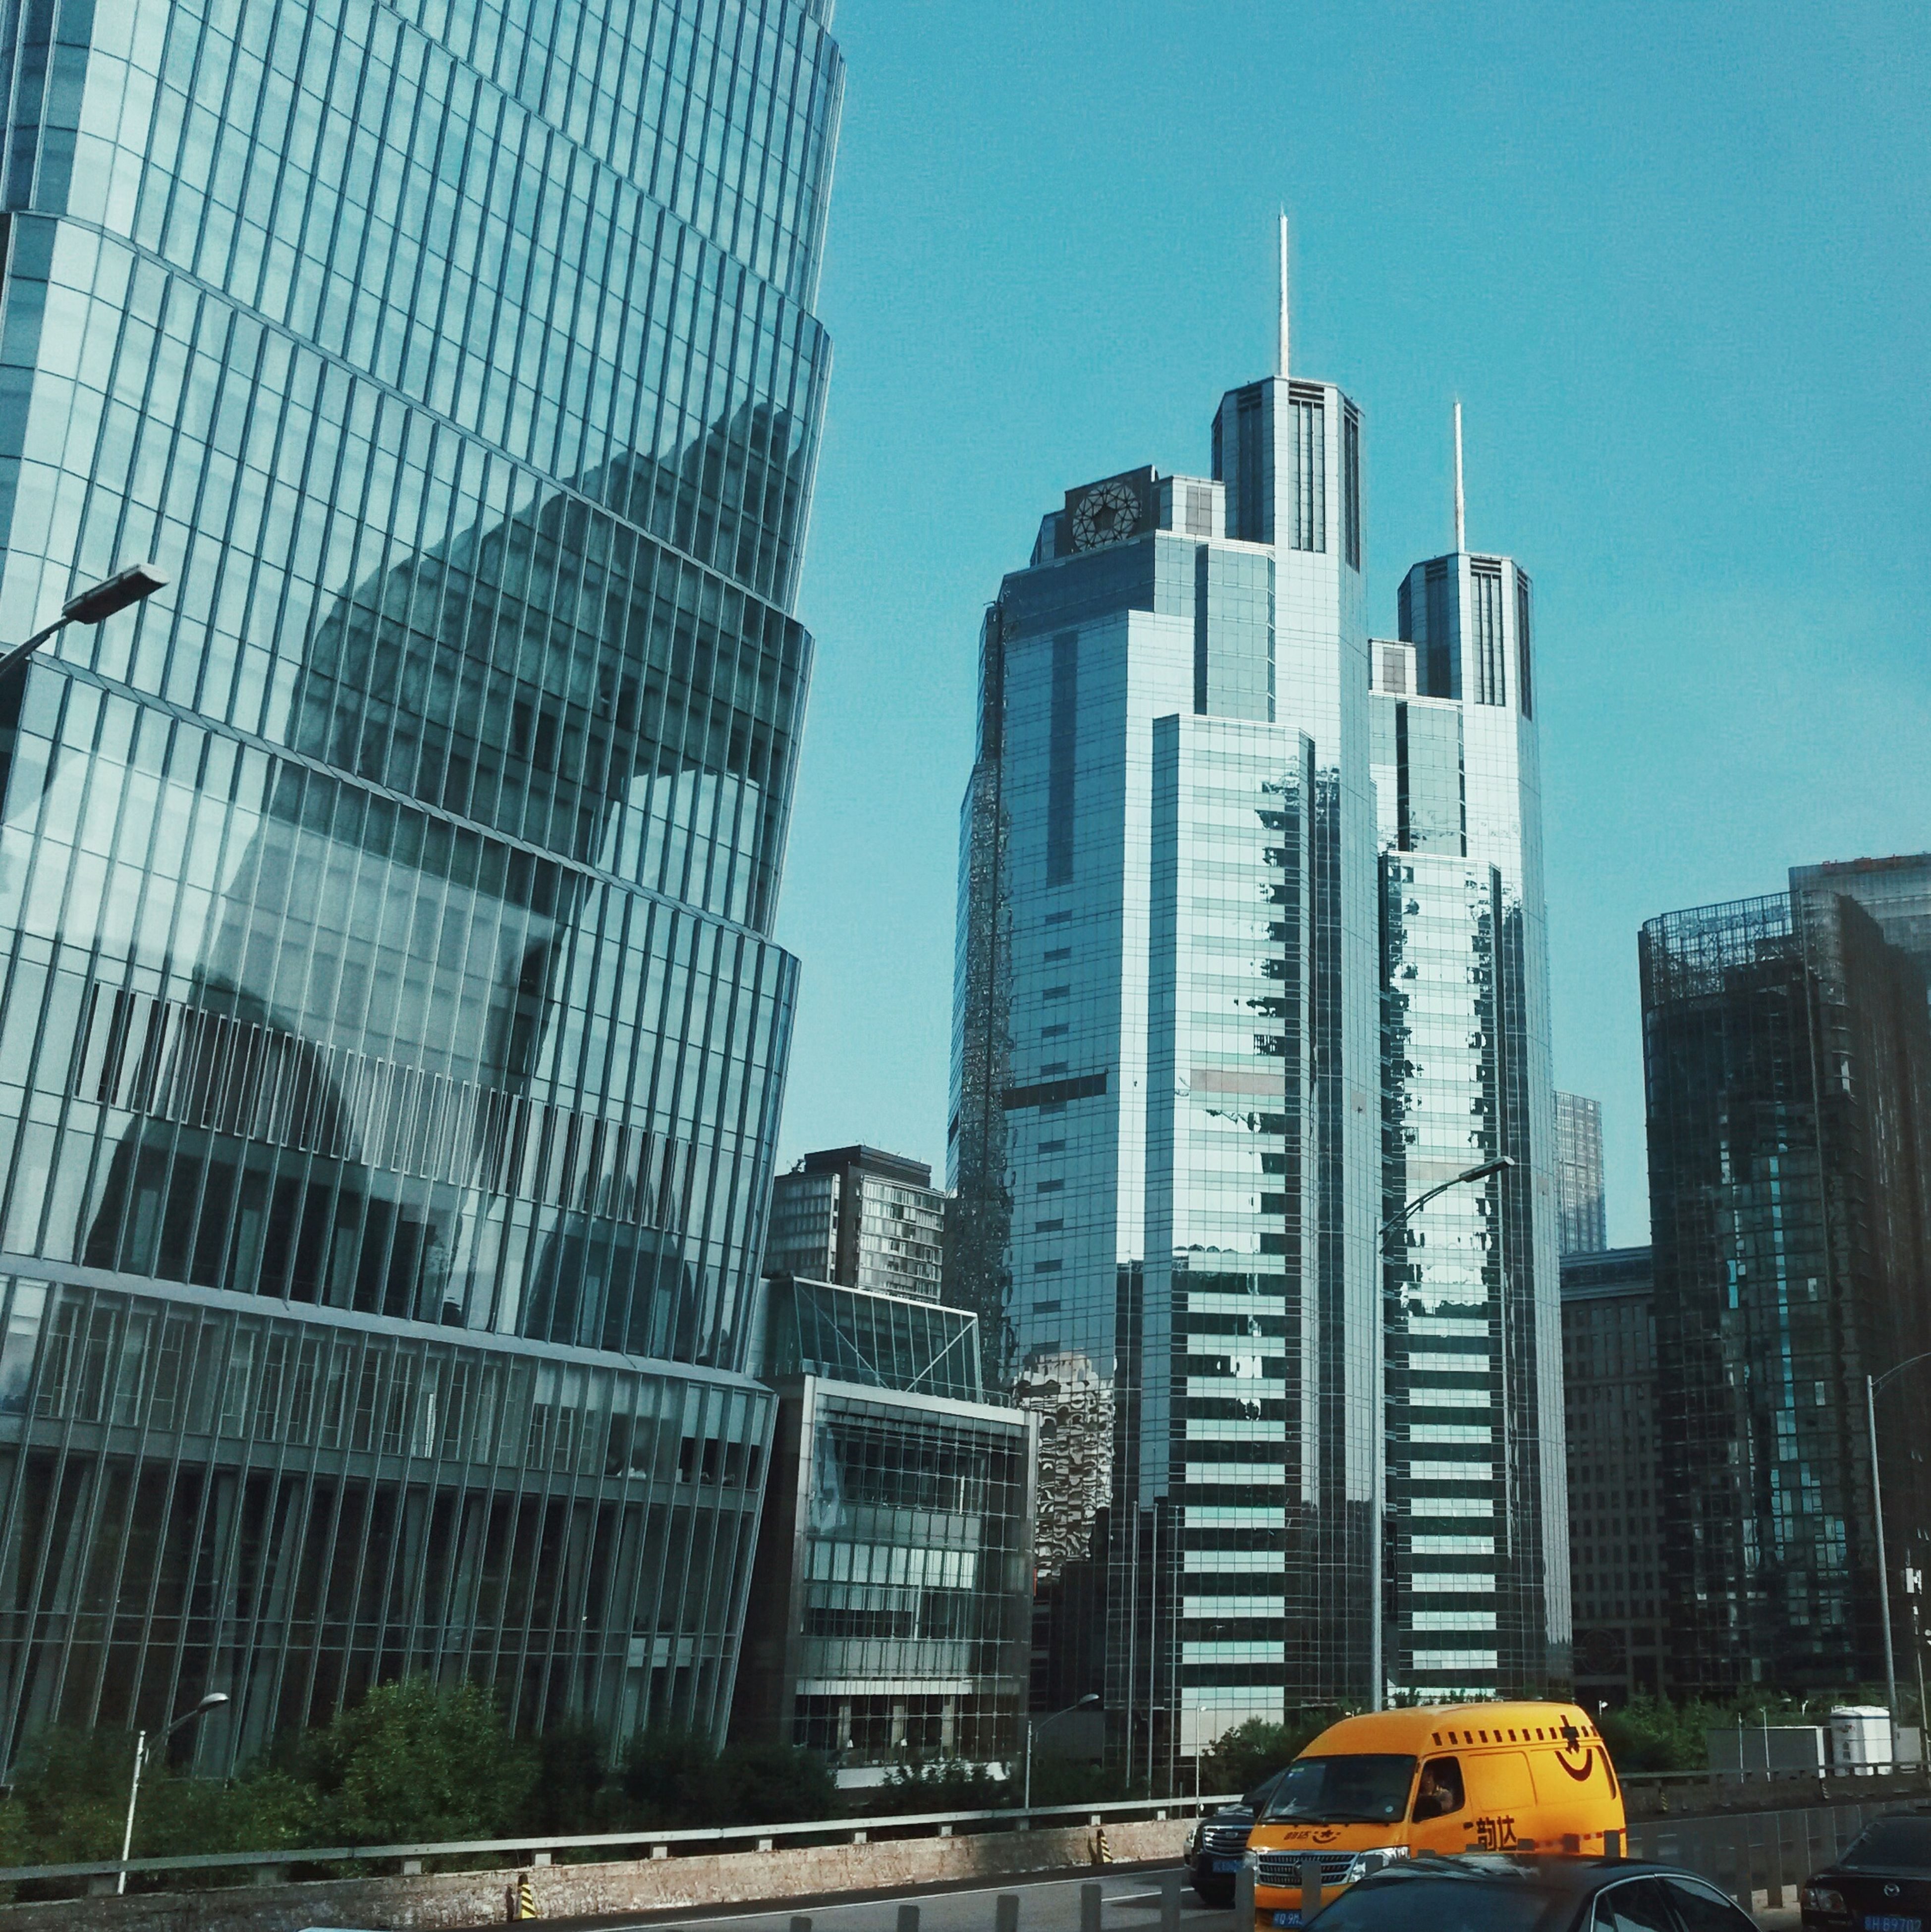 skyscraper, architecture, building exterior, built structure, city, tall - high, modern, tower, tall, development, day, transportation, car, low angle view, outdoors, land vehicle, travel destinations, no people, sky, cityscape, urban skyline, office park